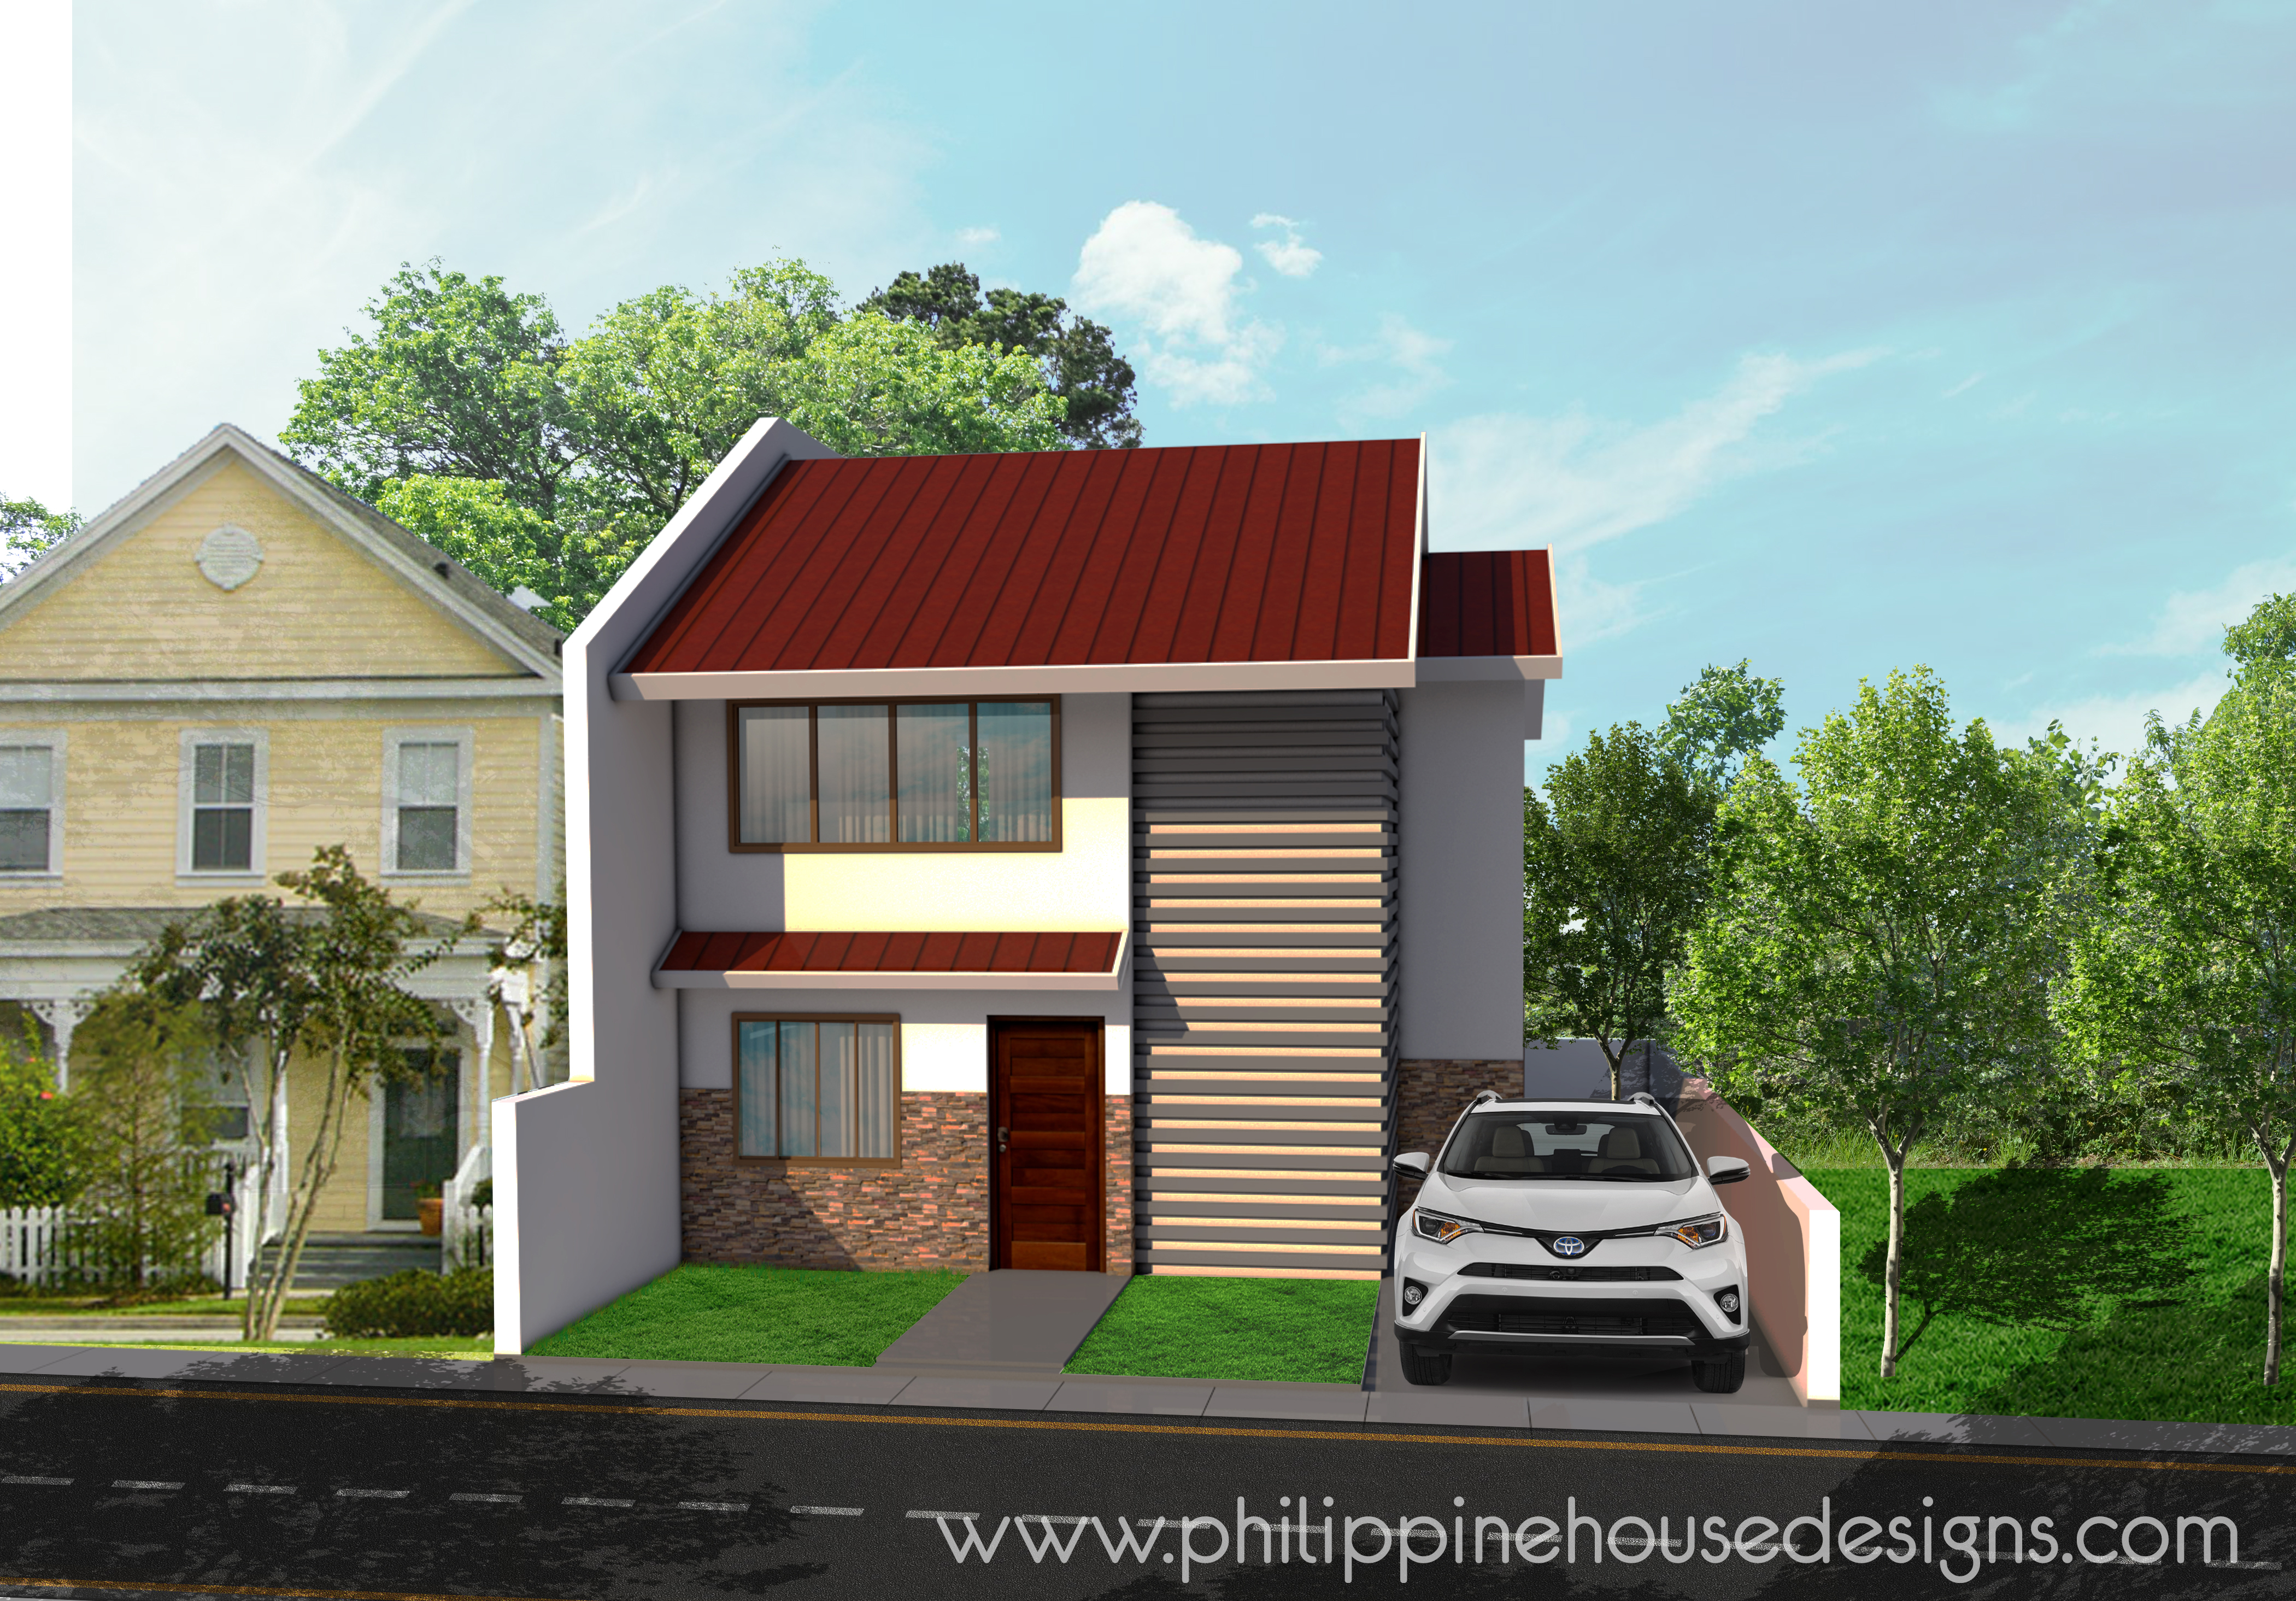 Simple 2 Story House Designs And Plans Philippine House Designs